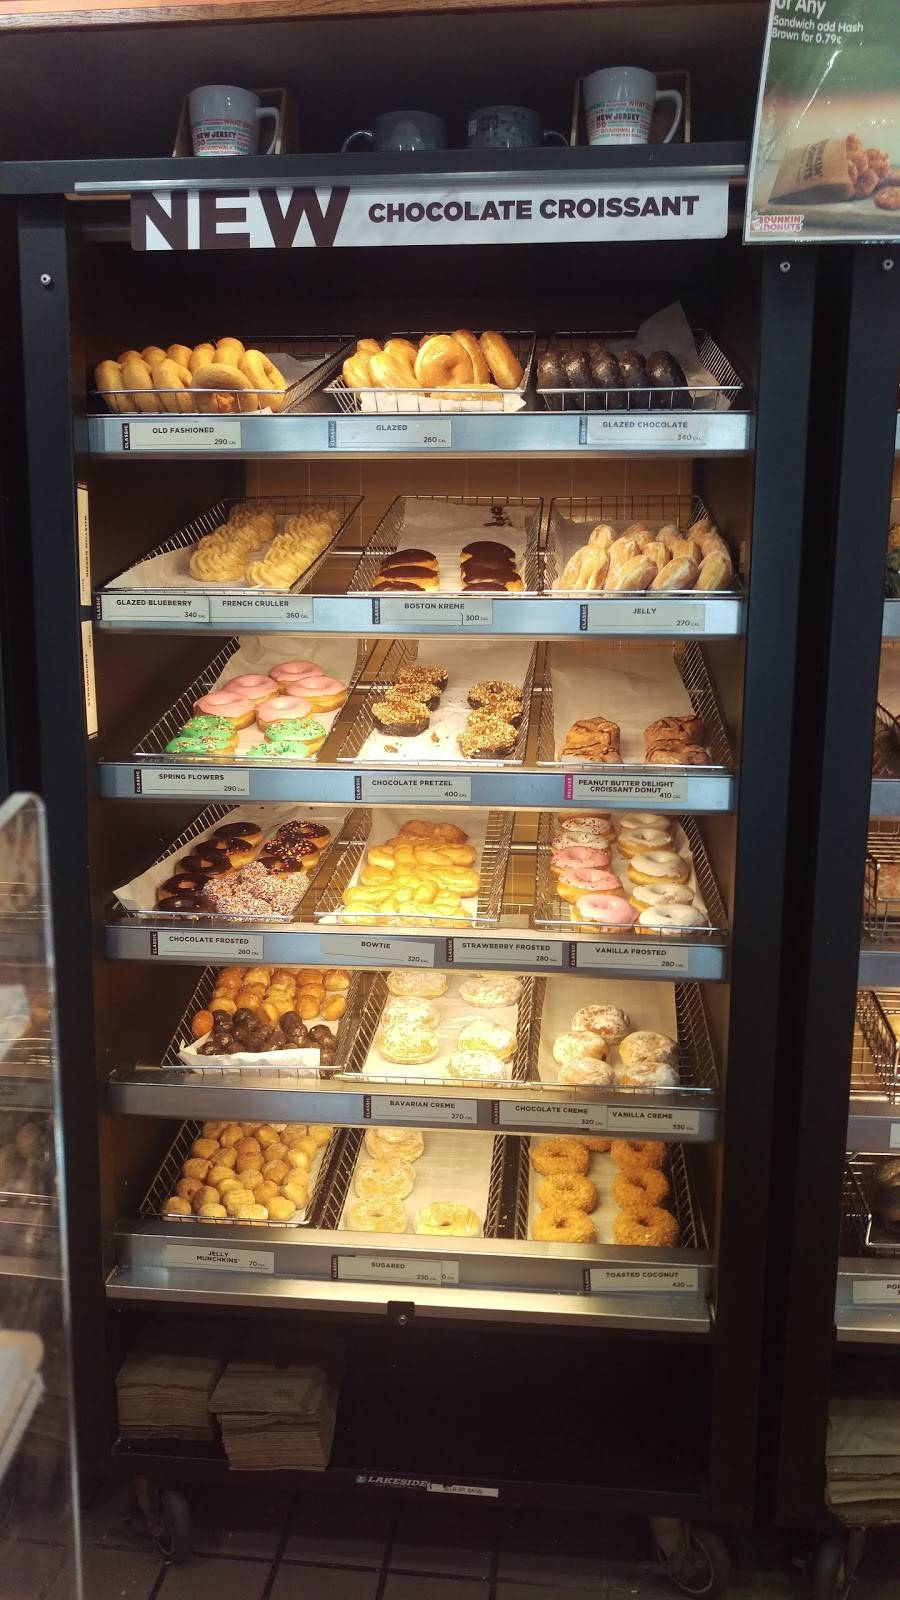 Dunkin Donuts | cafe | 4100 Park Ave, Weehawken, NJ 07086, USA | 2013488700 OR +1 201-348-8700